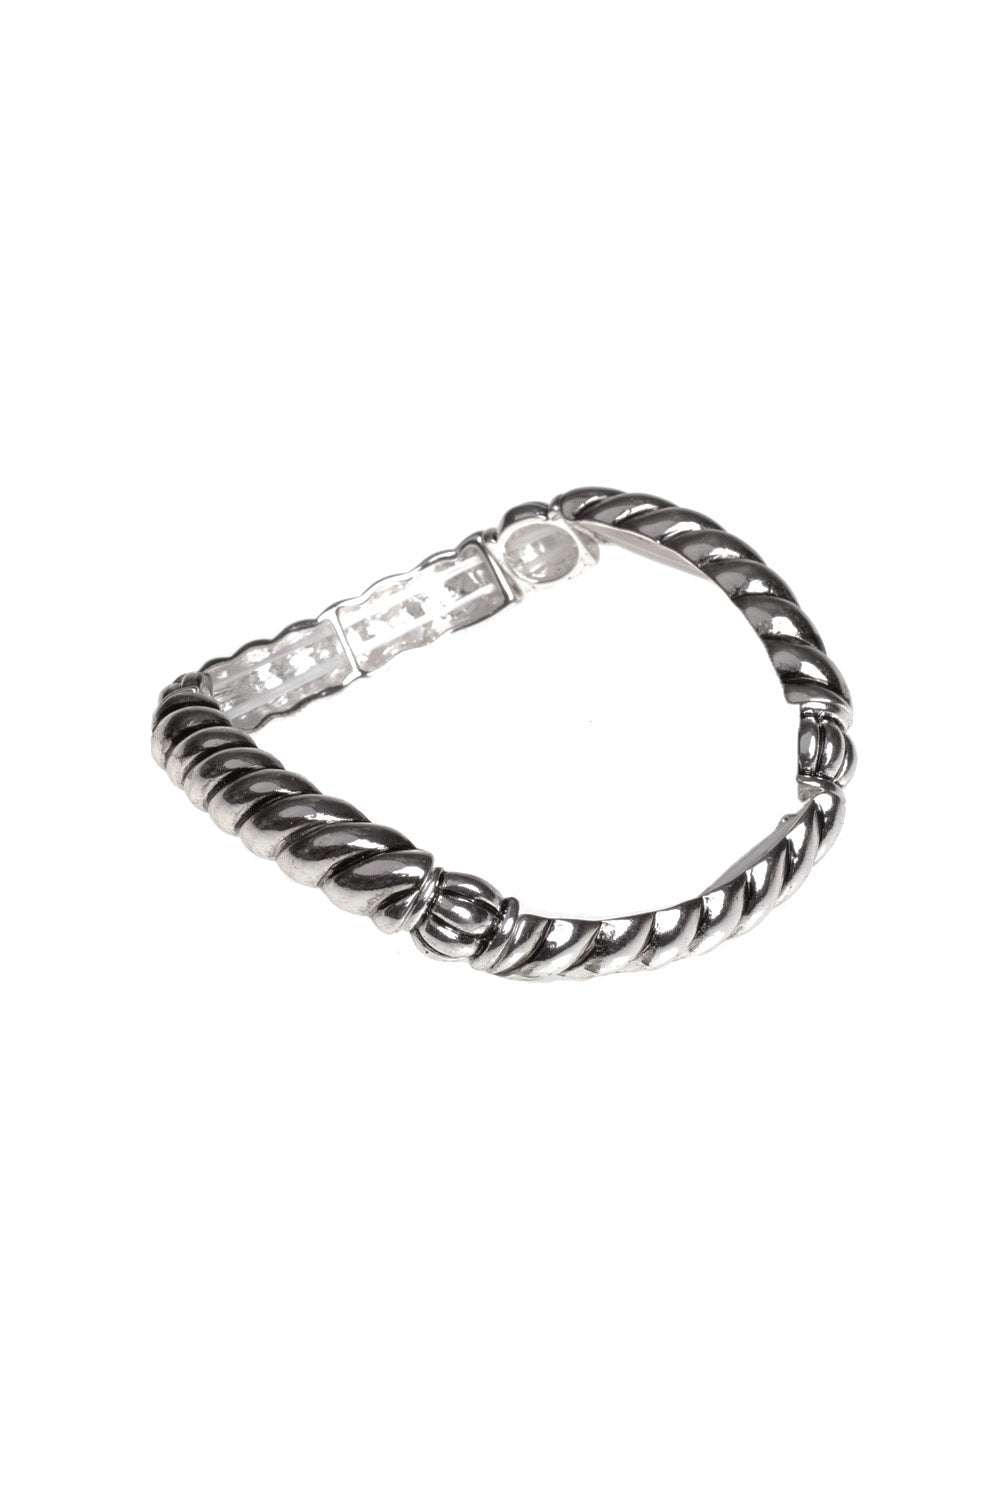 Type 2 Winding Around My Heart Bracelet